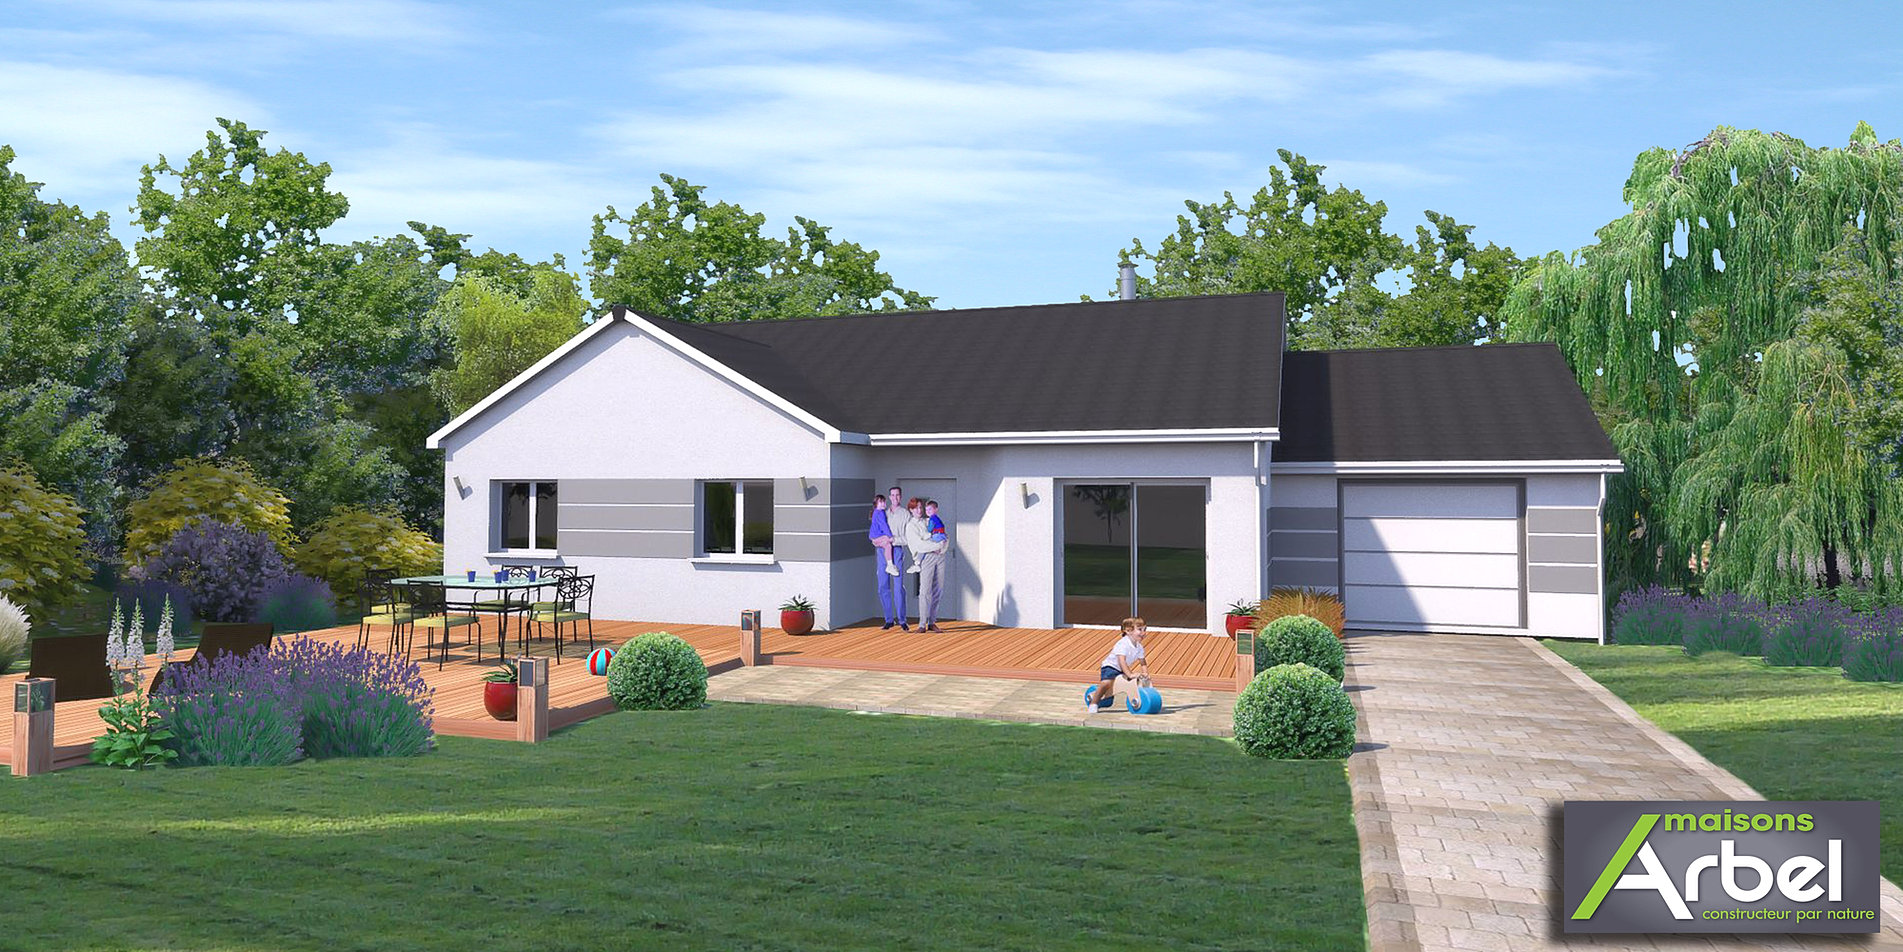 Plan permis de construire france christophe taurel for Construire maison en 3d